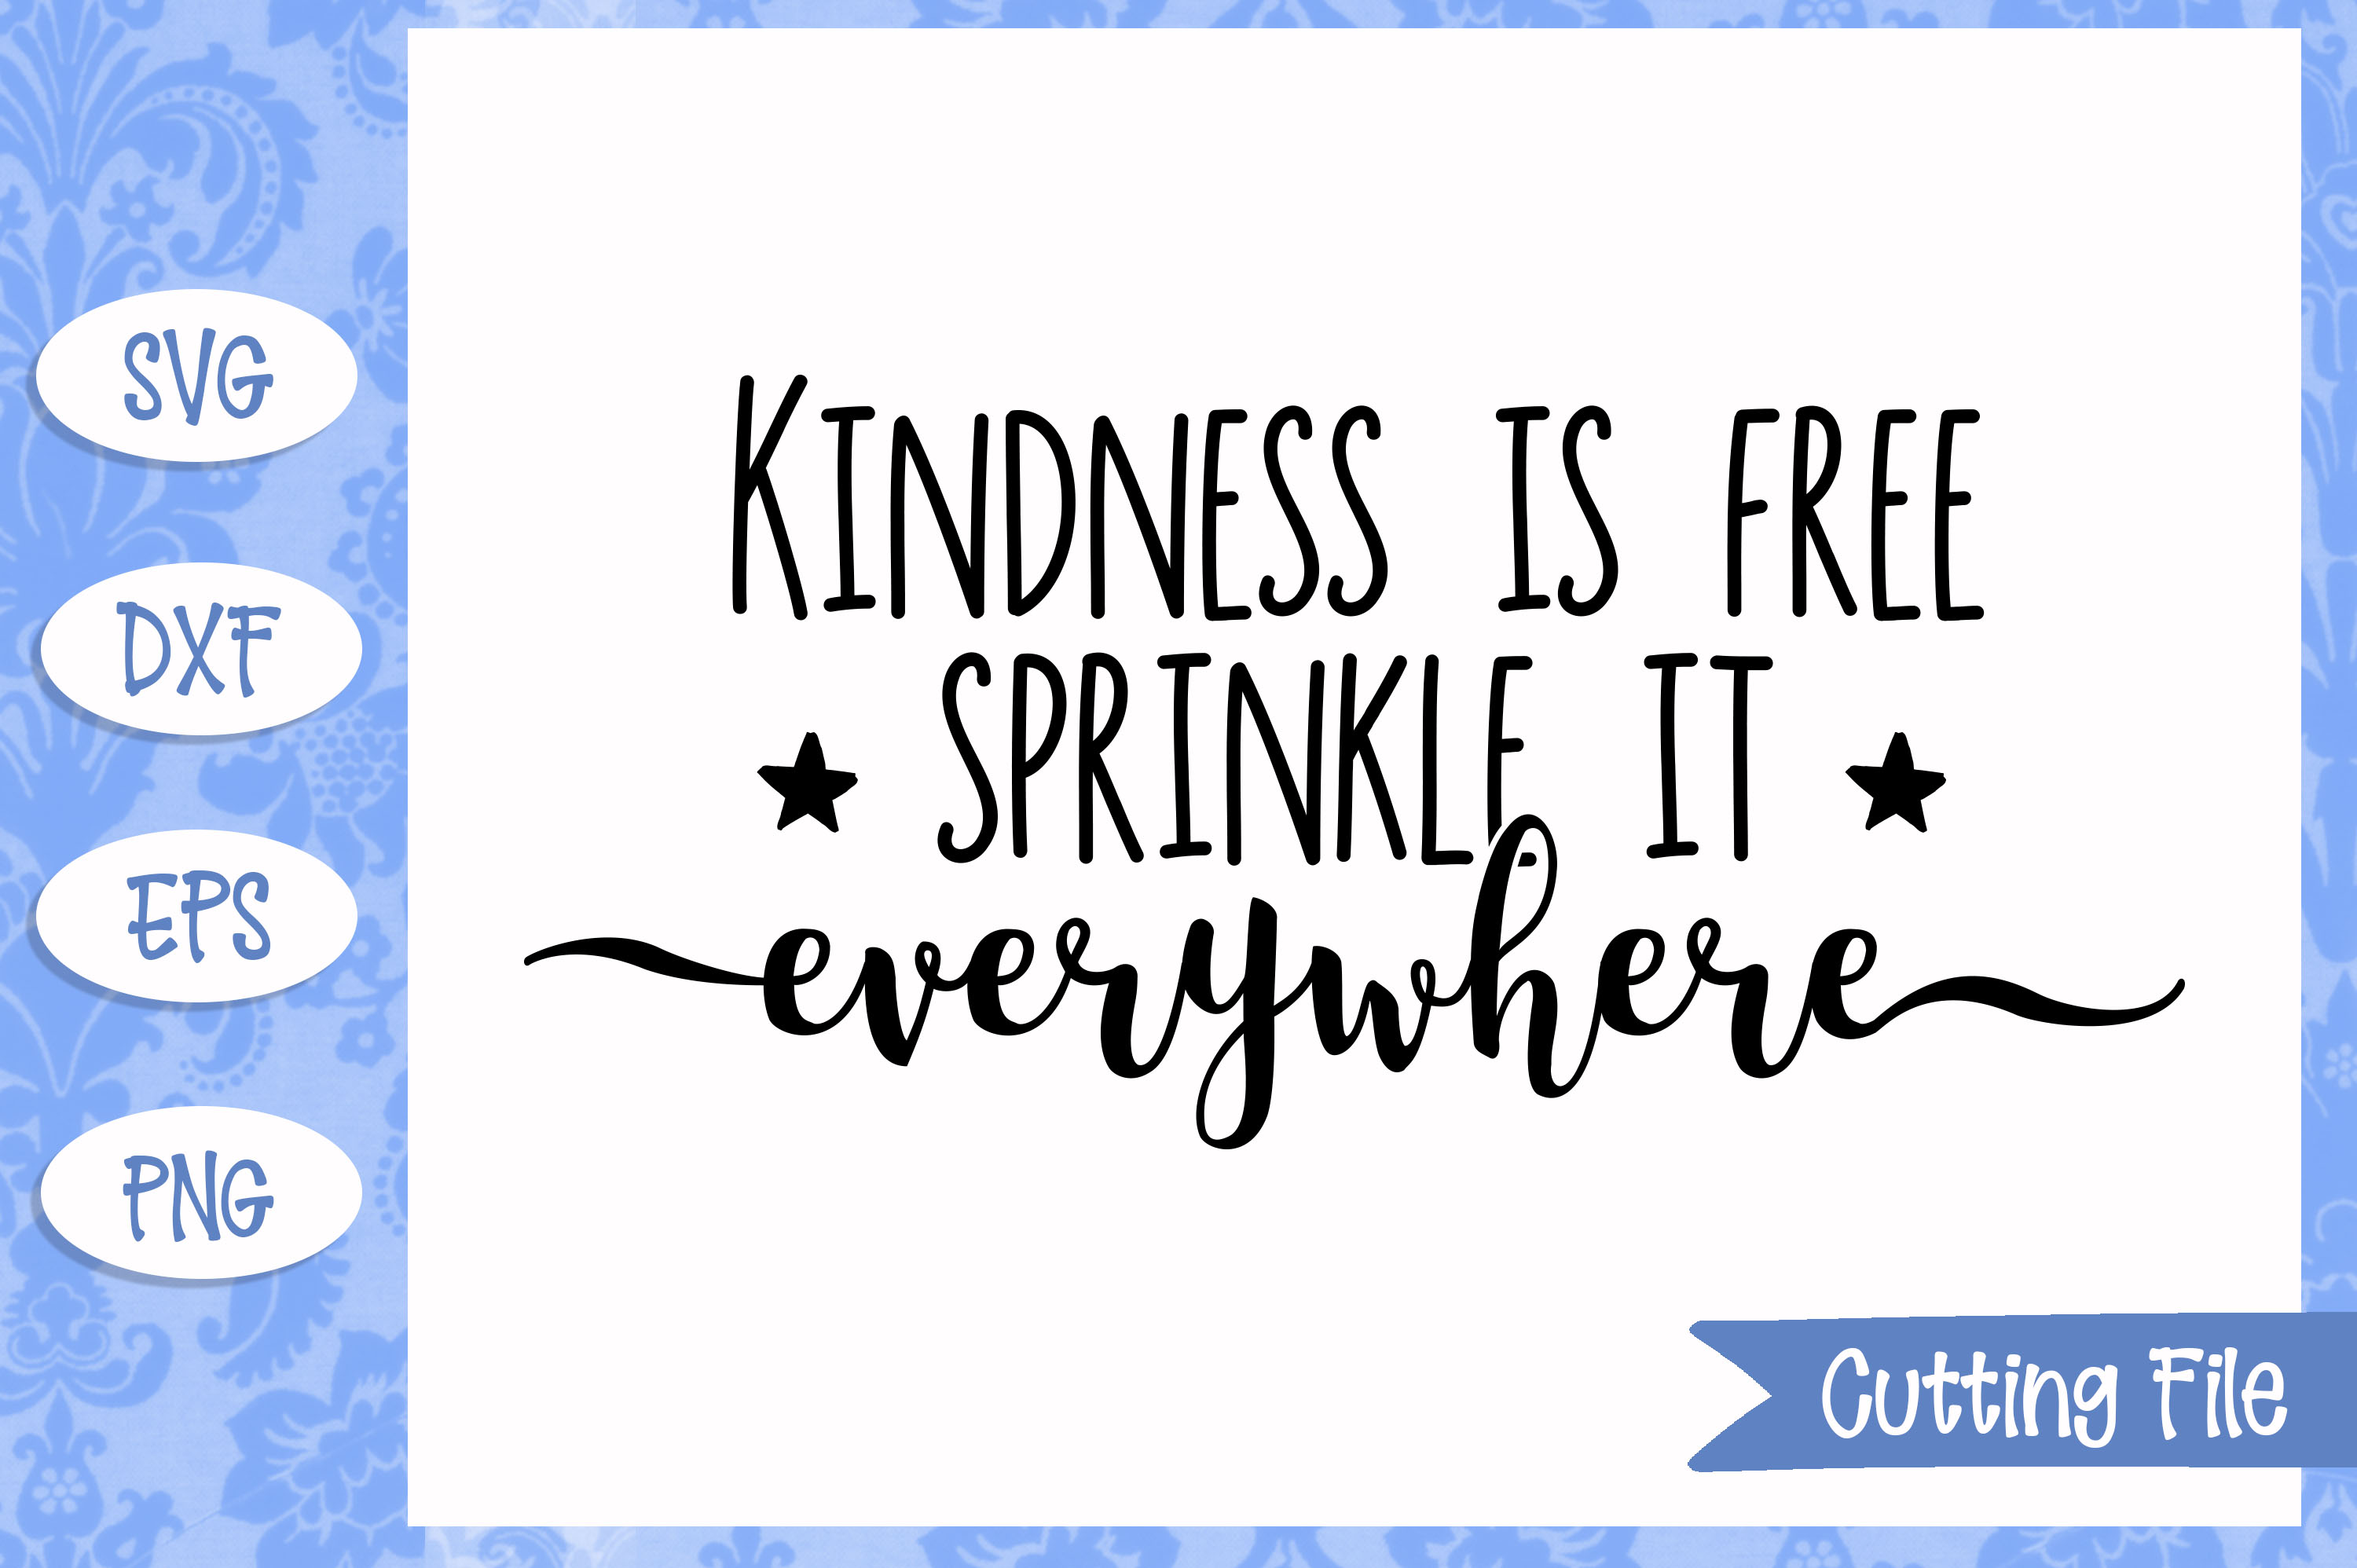 Kindness is free sprinkle it everywhere SVG file example image 1